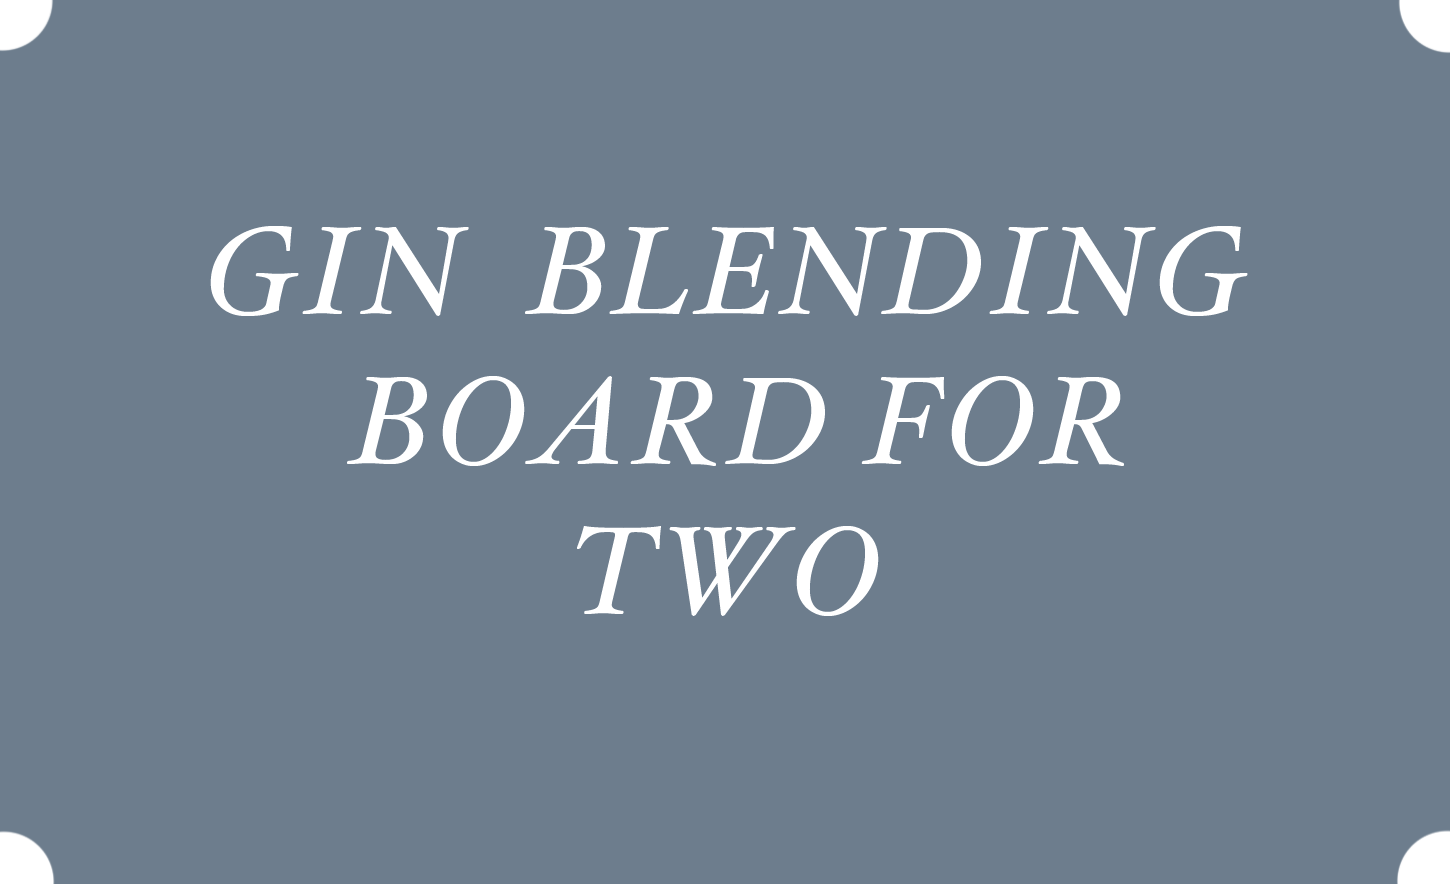 Gin Blending Board For Two